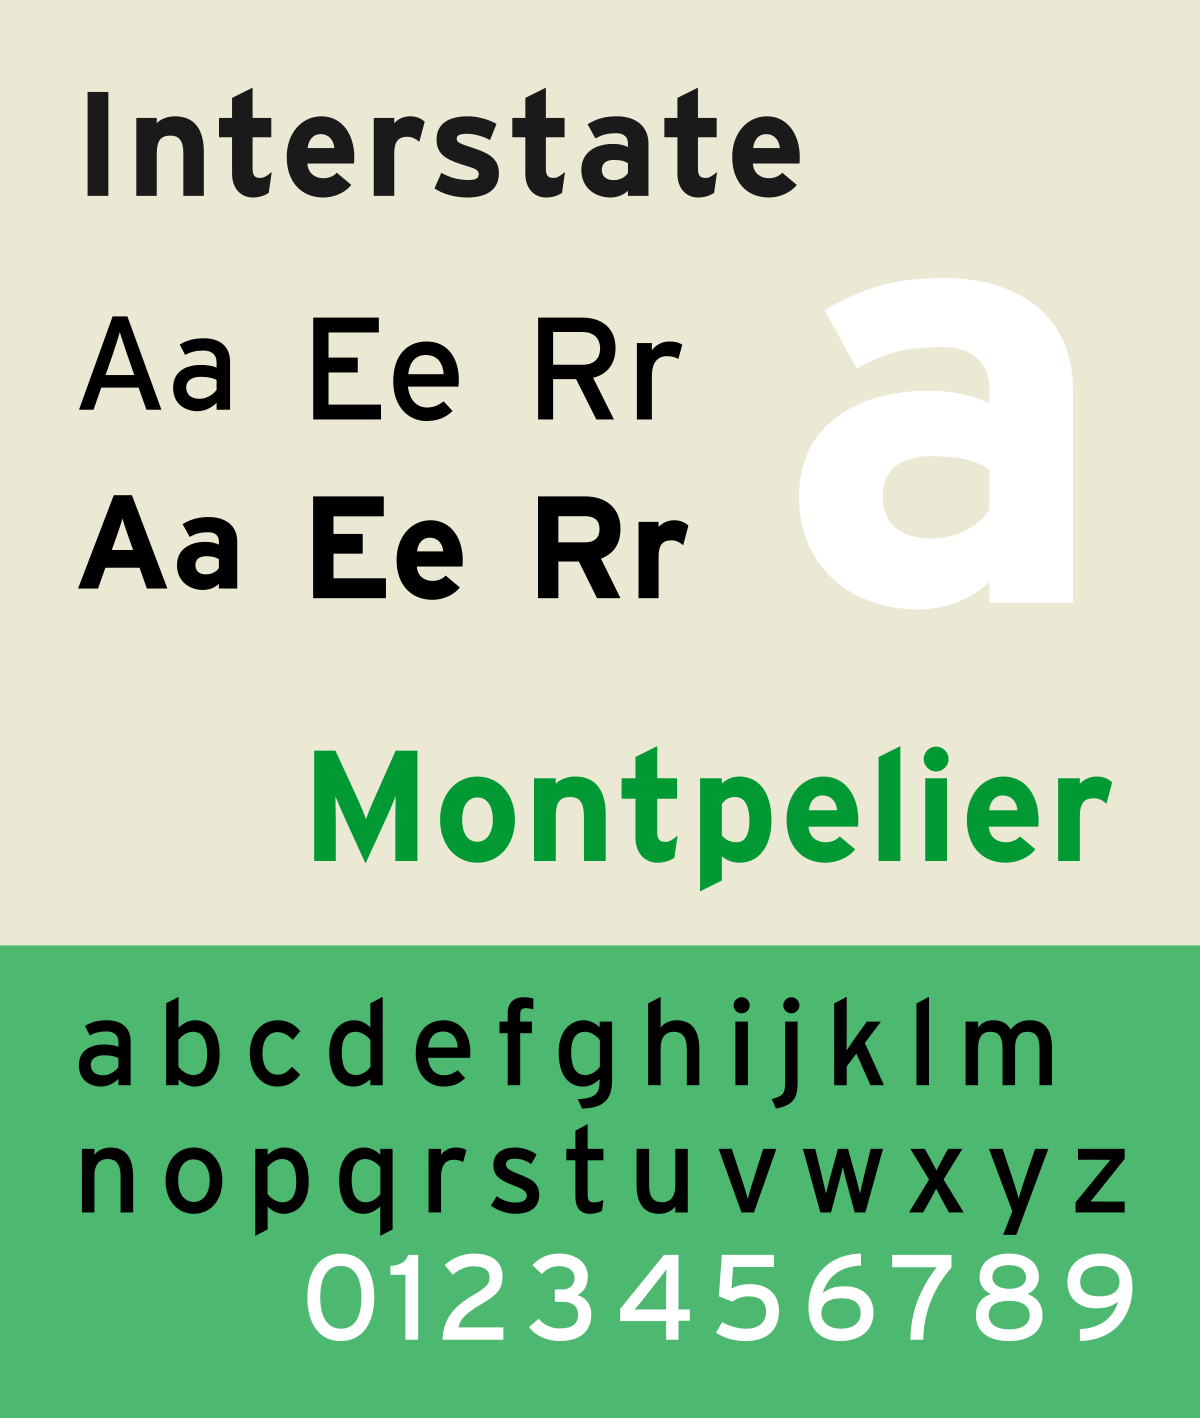 25 most used typefaces in advertising: Interstate